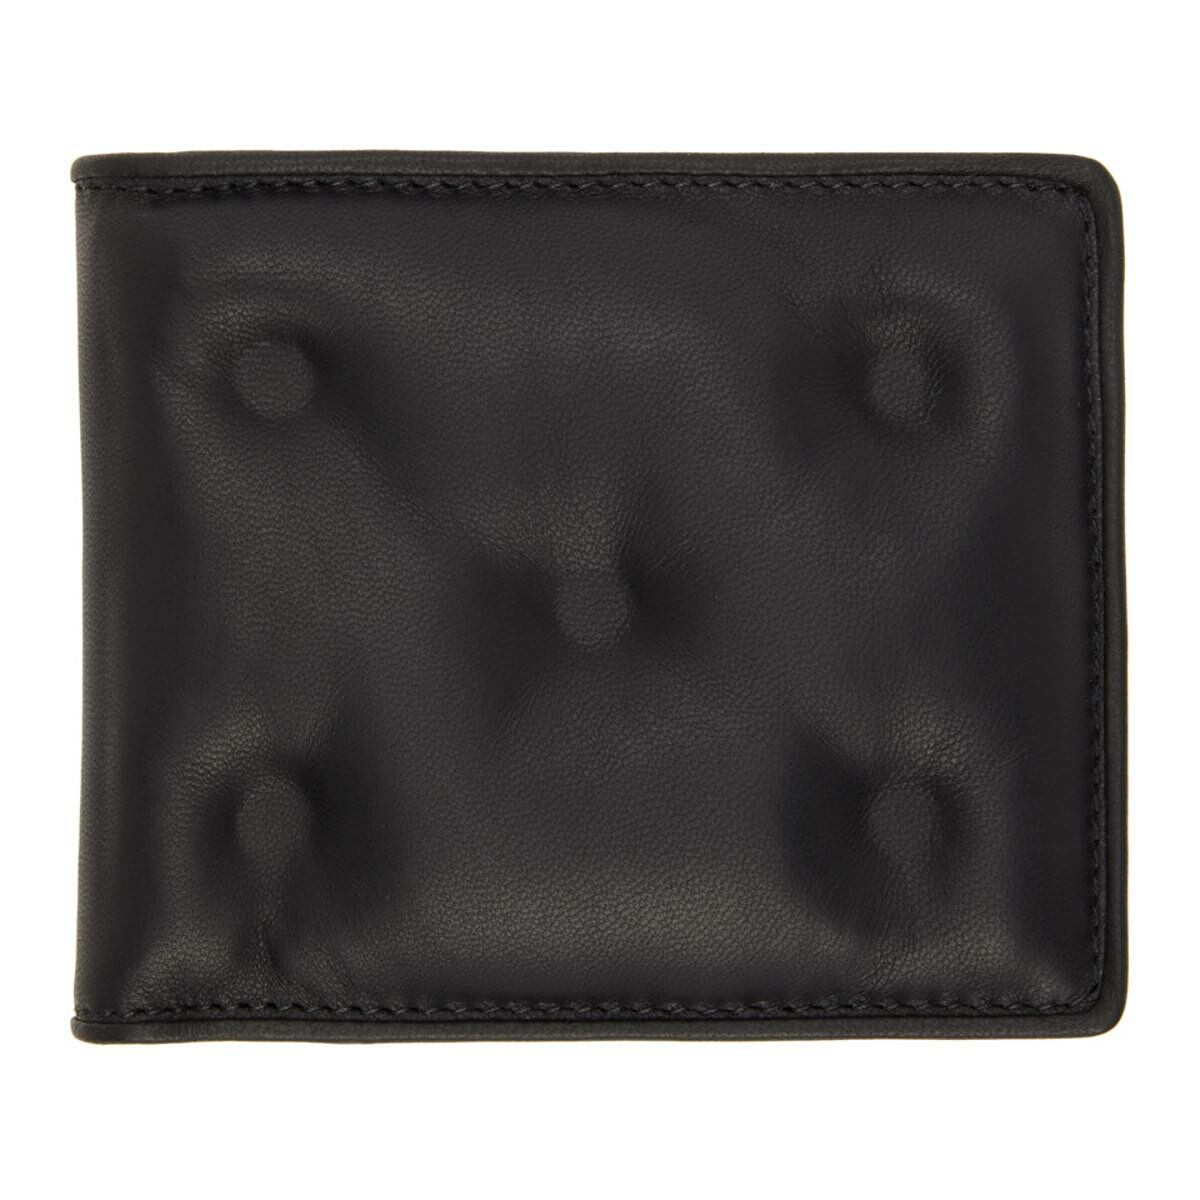 Maison Margiela Black Glam Slam Wallet Ssense USA MEN Men ACCESSORIES Mens WALLETS